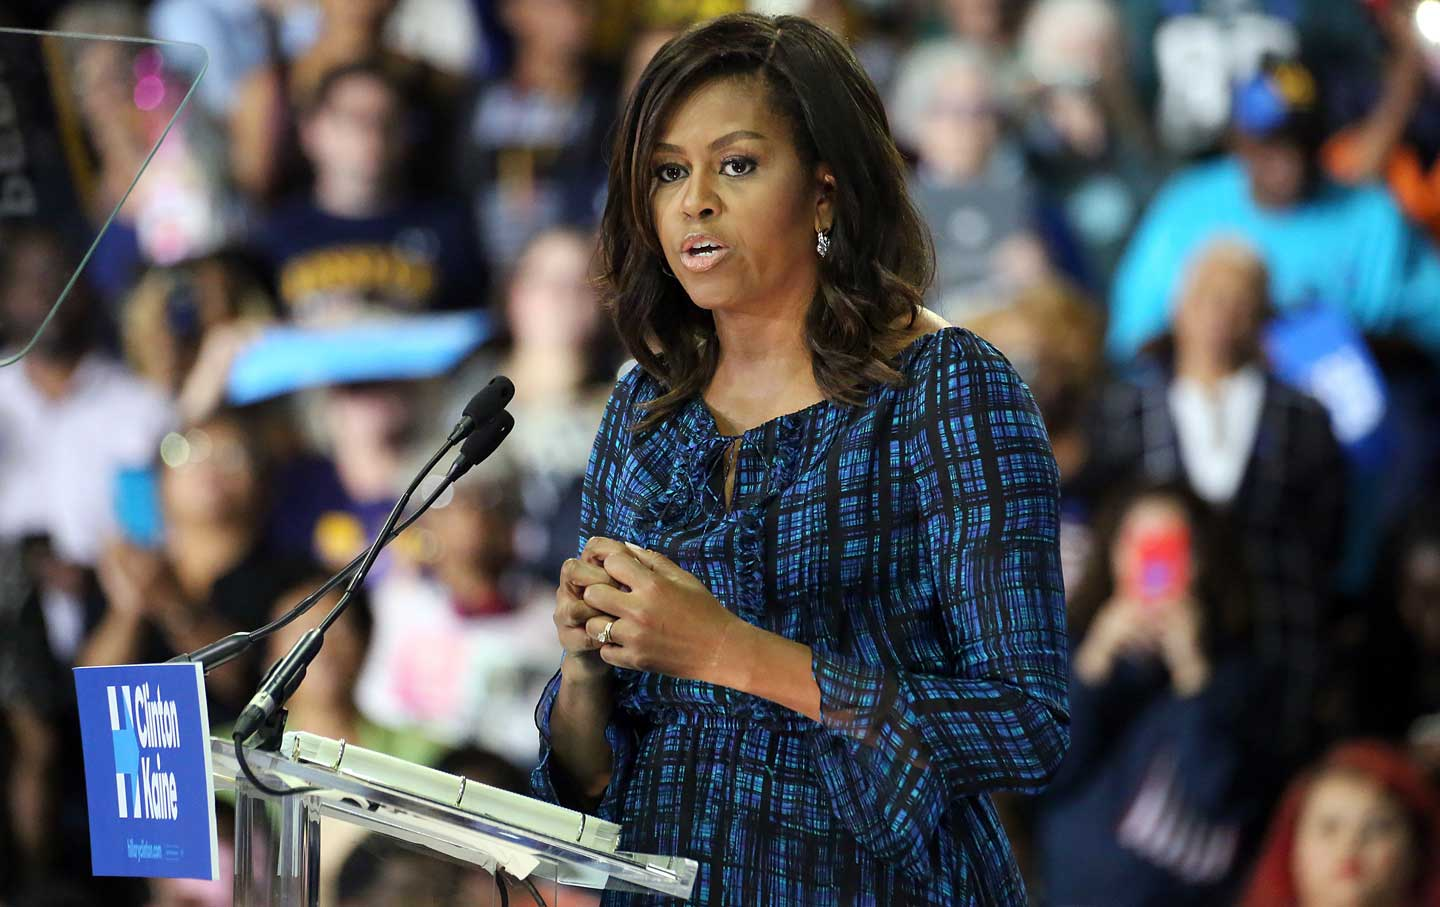 Michelle Obama speaks in Pennsylvania